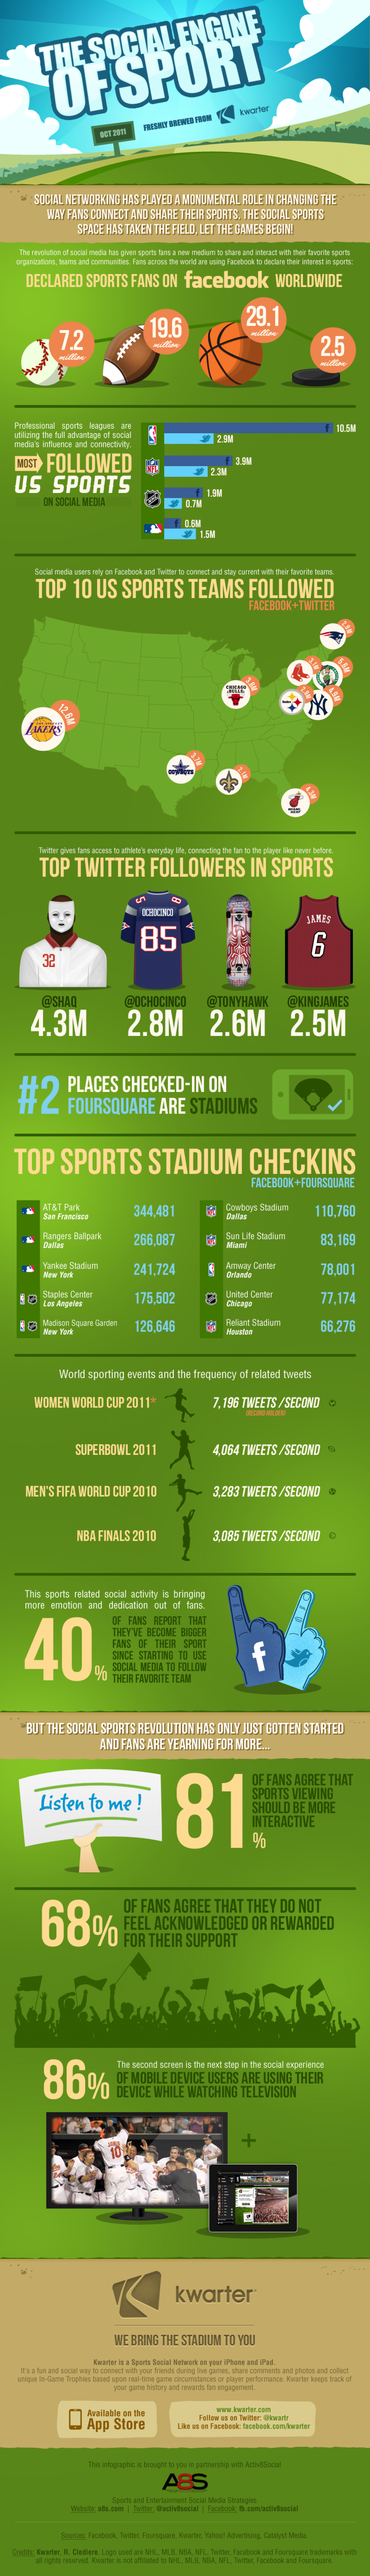 The Social Engine of Sport Infographic